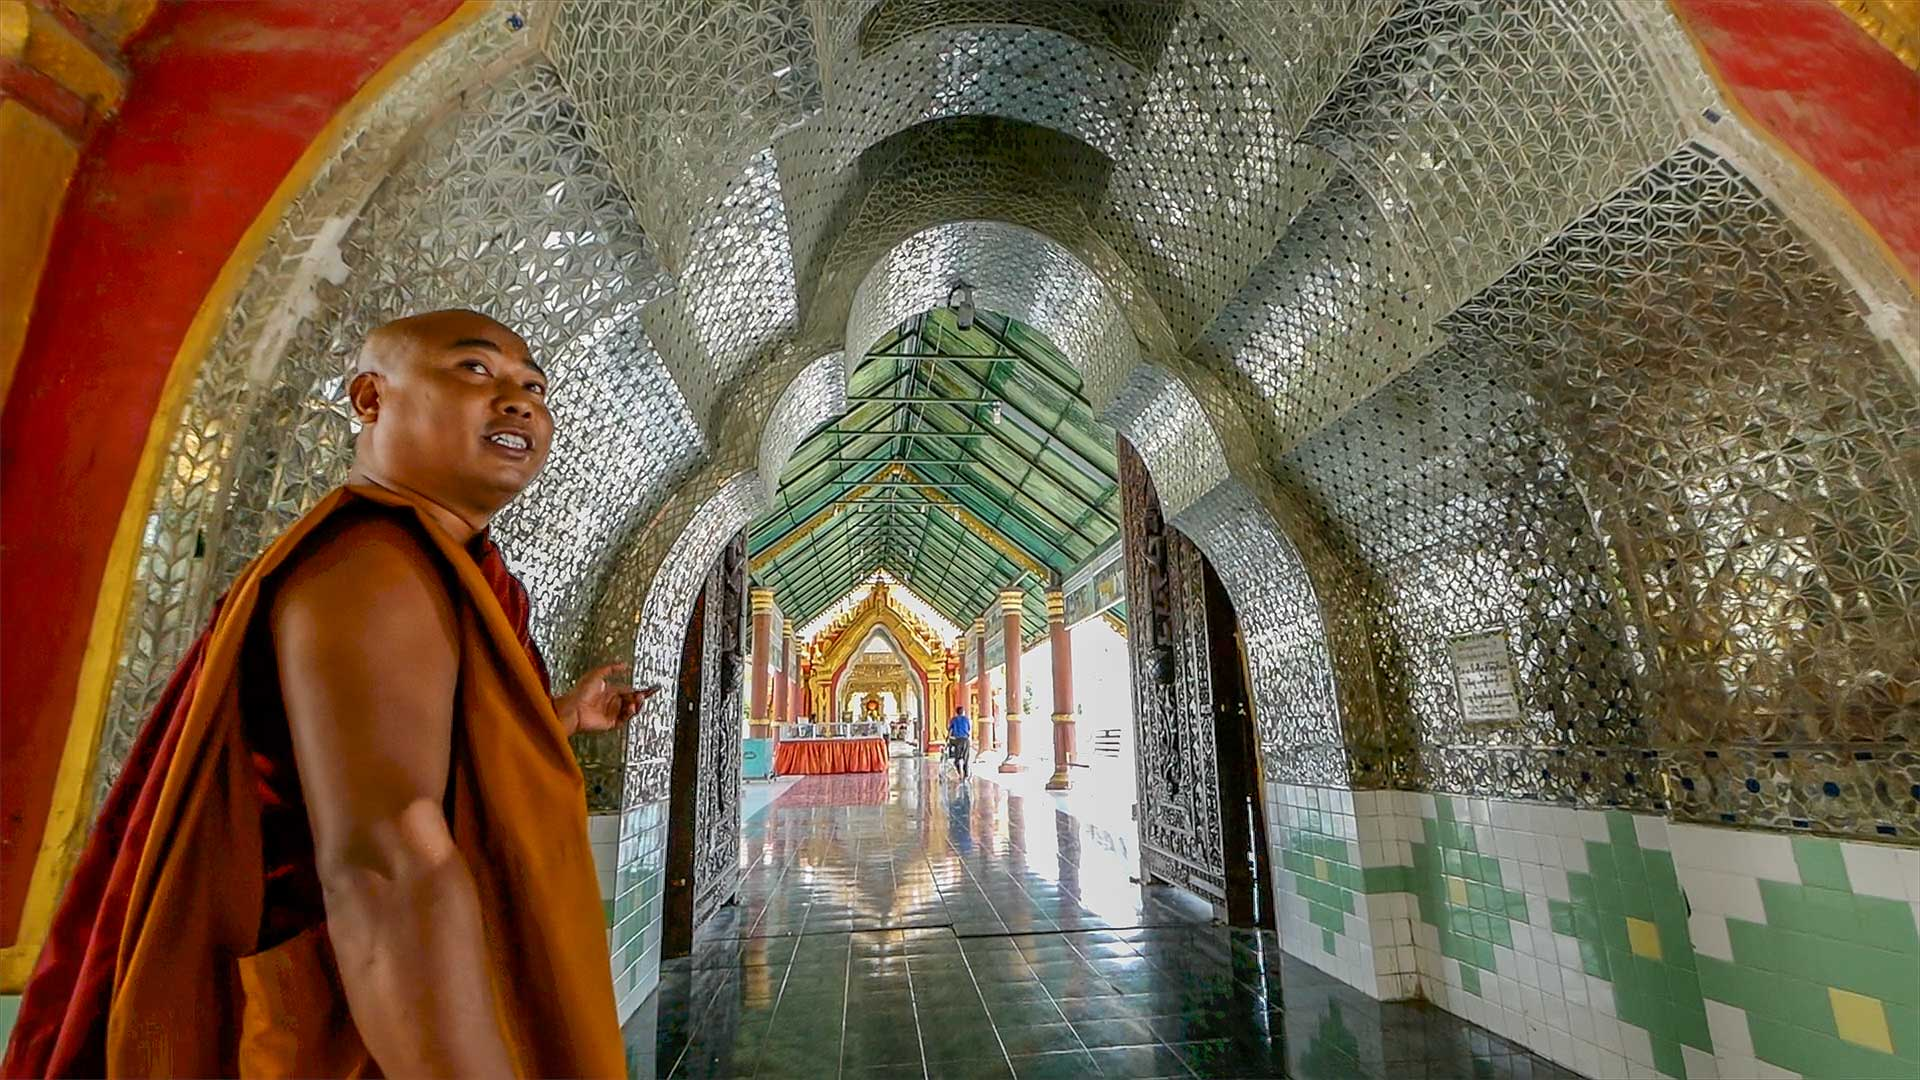 Trip to Burma | Trip to Burma is our detailed travel guide